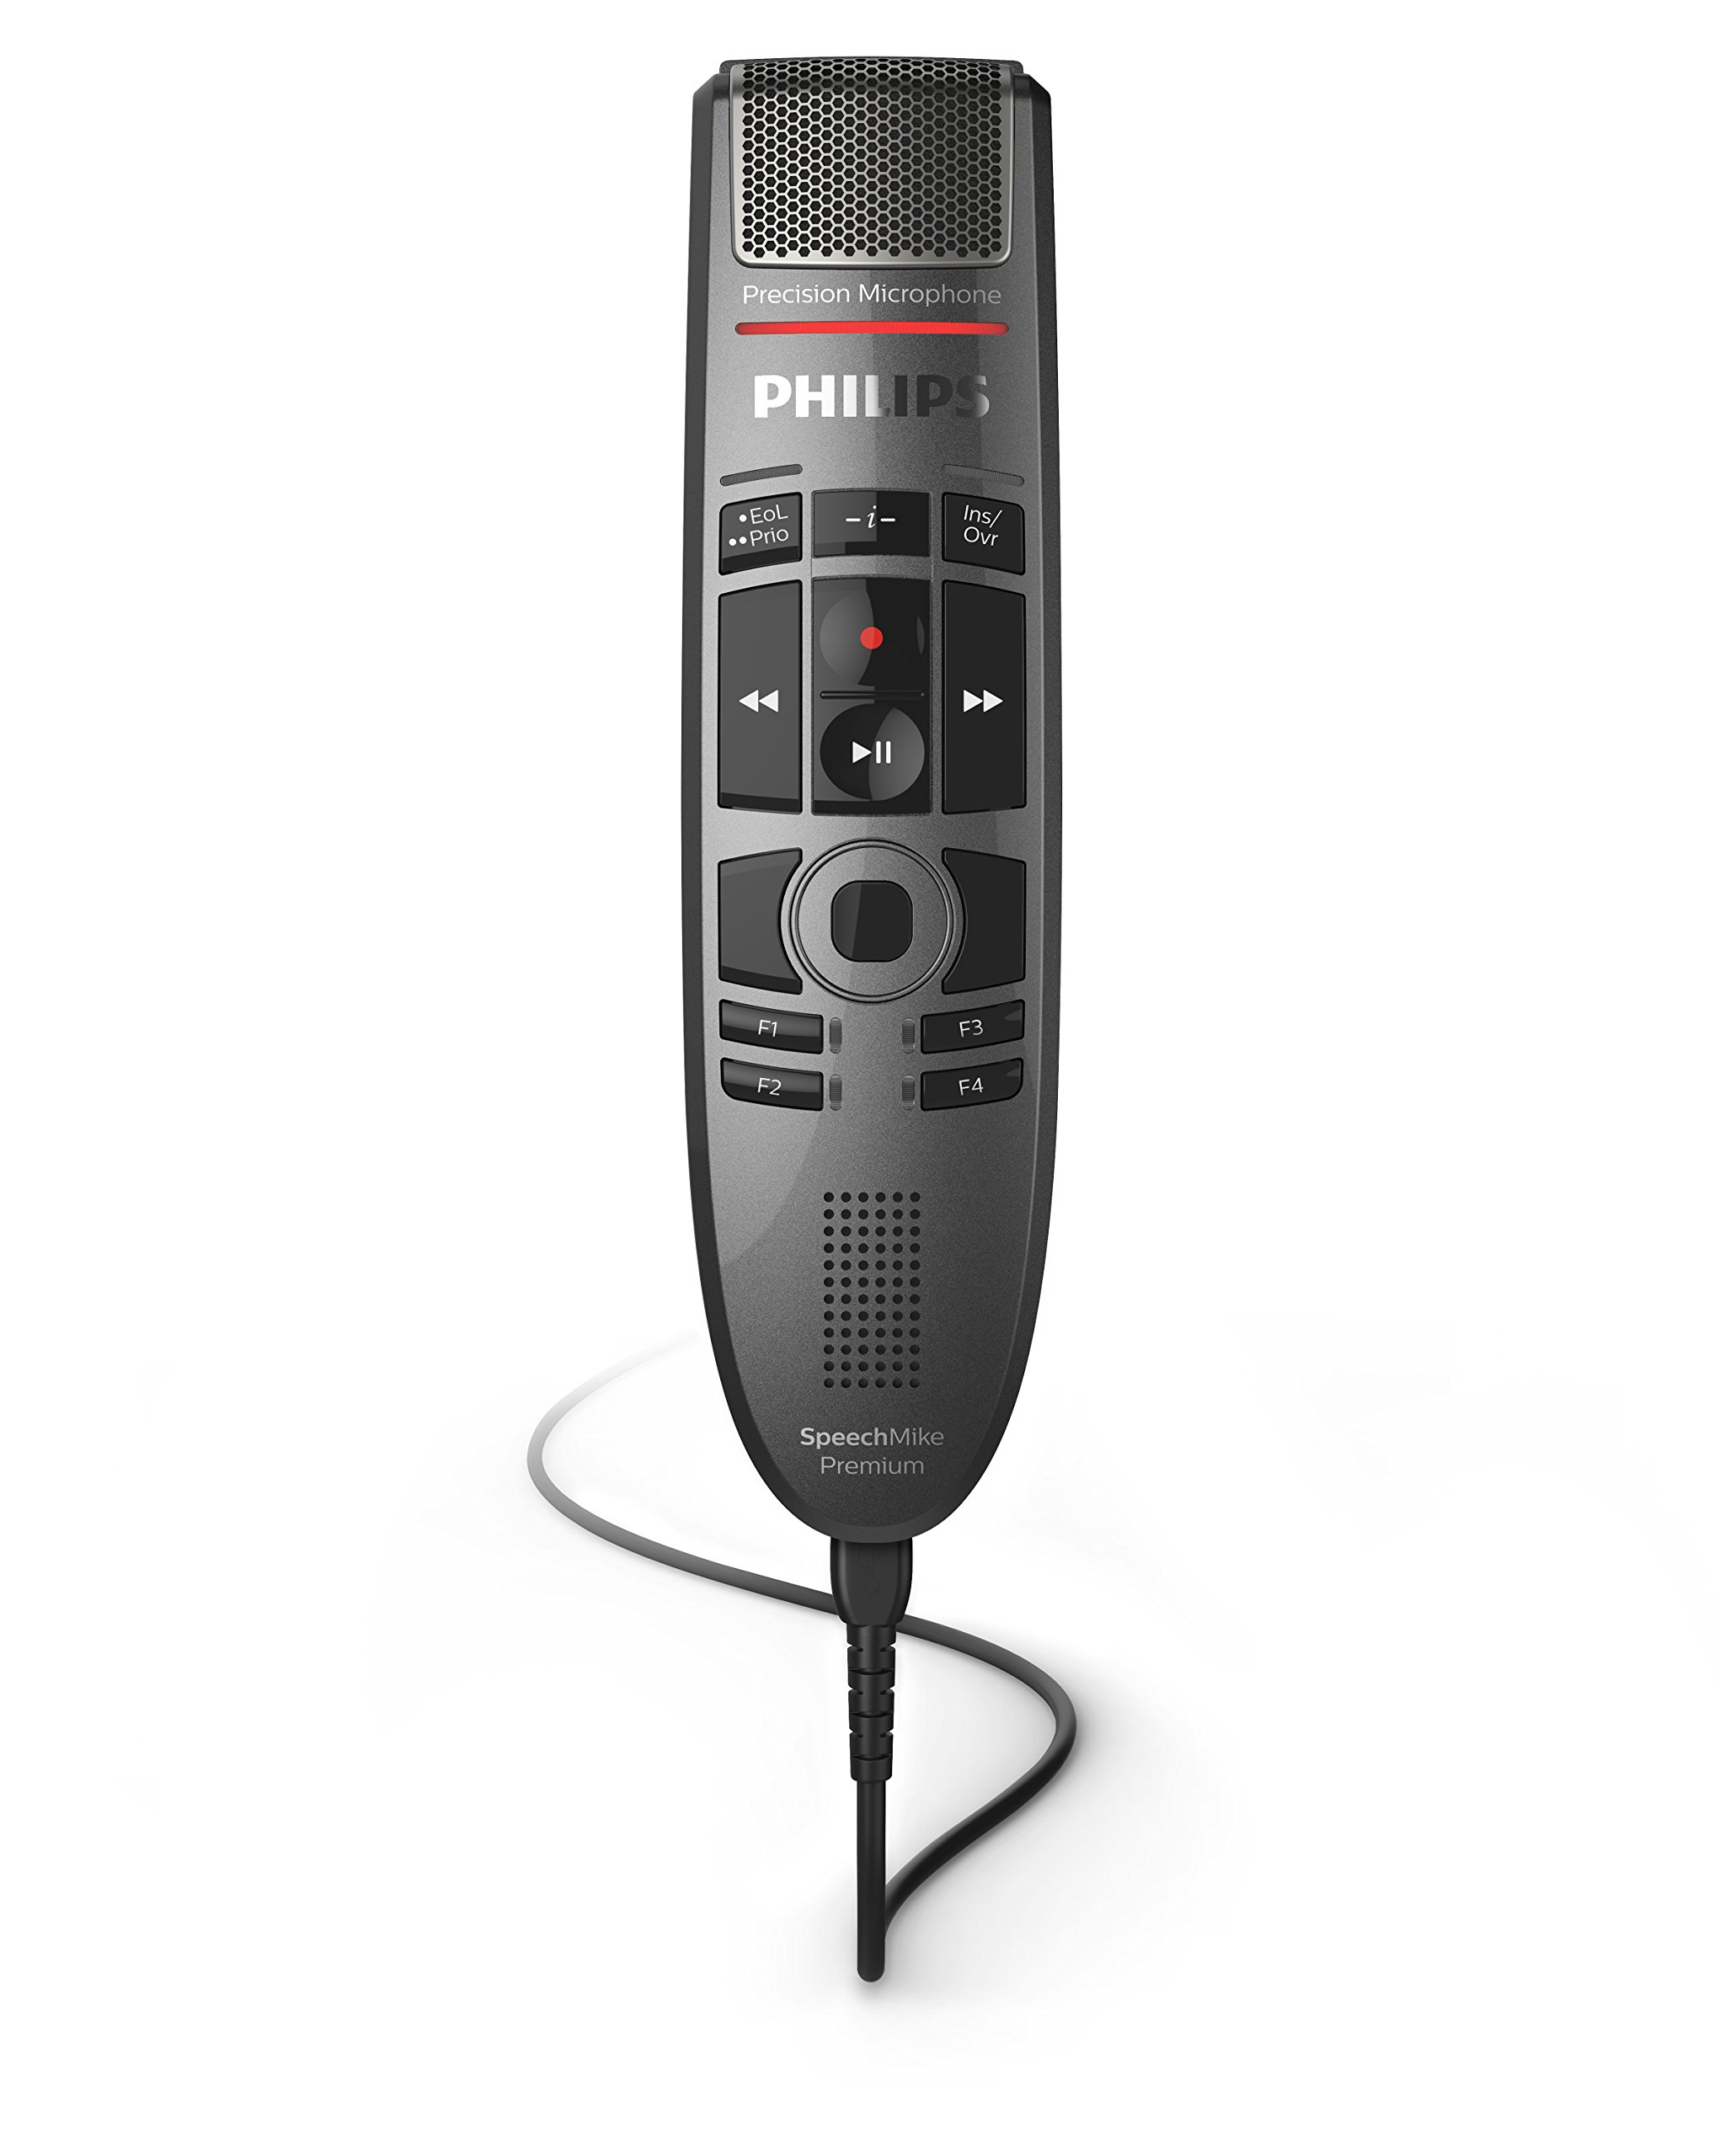 Philips SMP3700 SpeechMike Premium Touch Precision USB Microphone - Push Button Operation by Philips